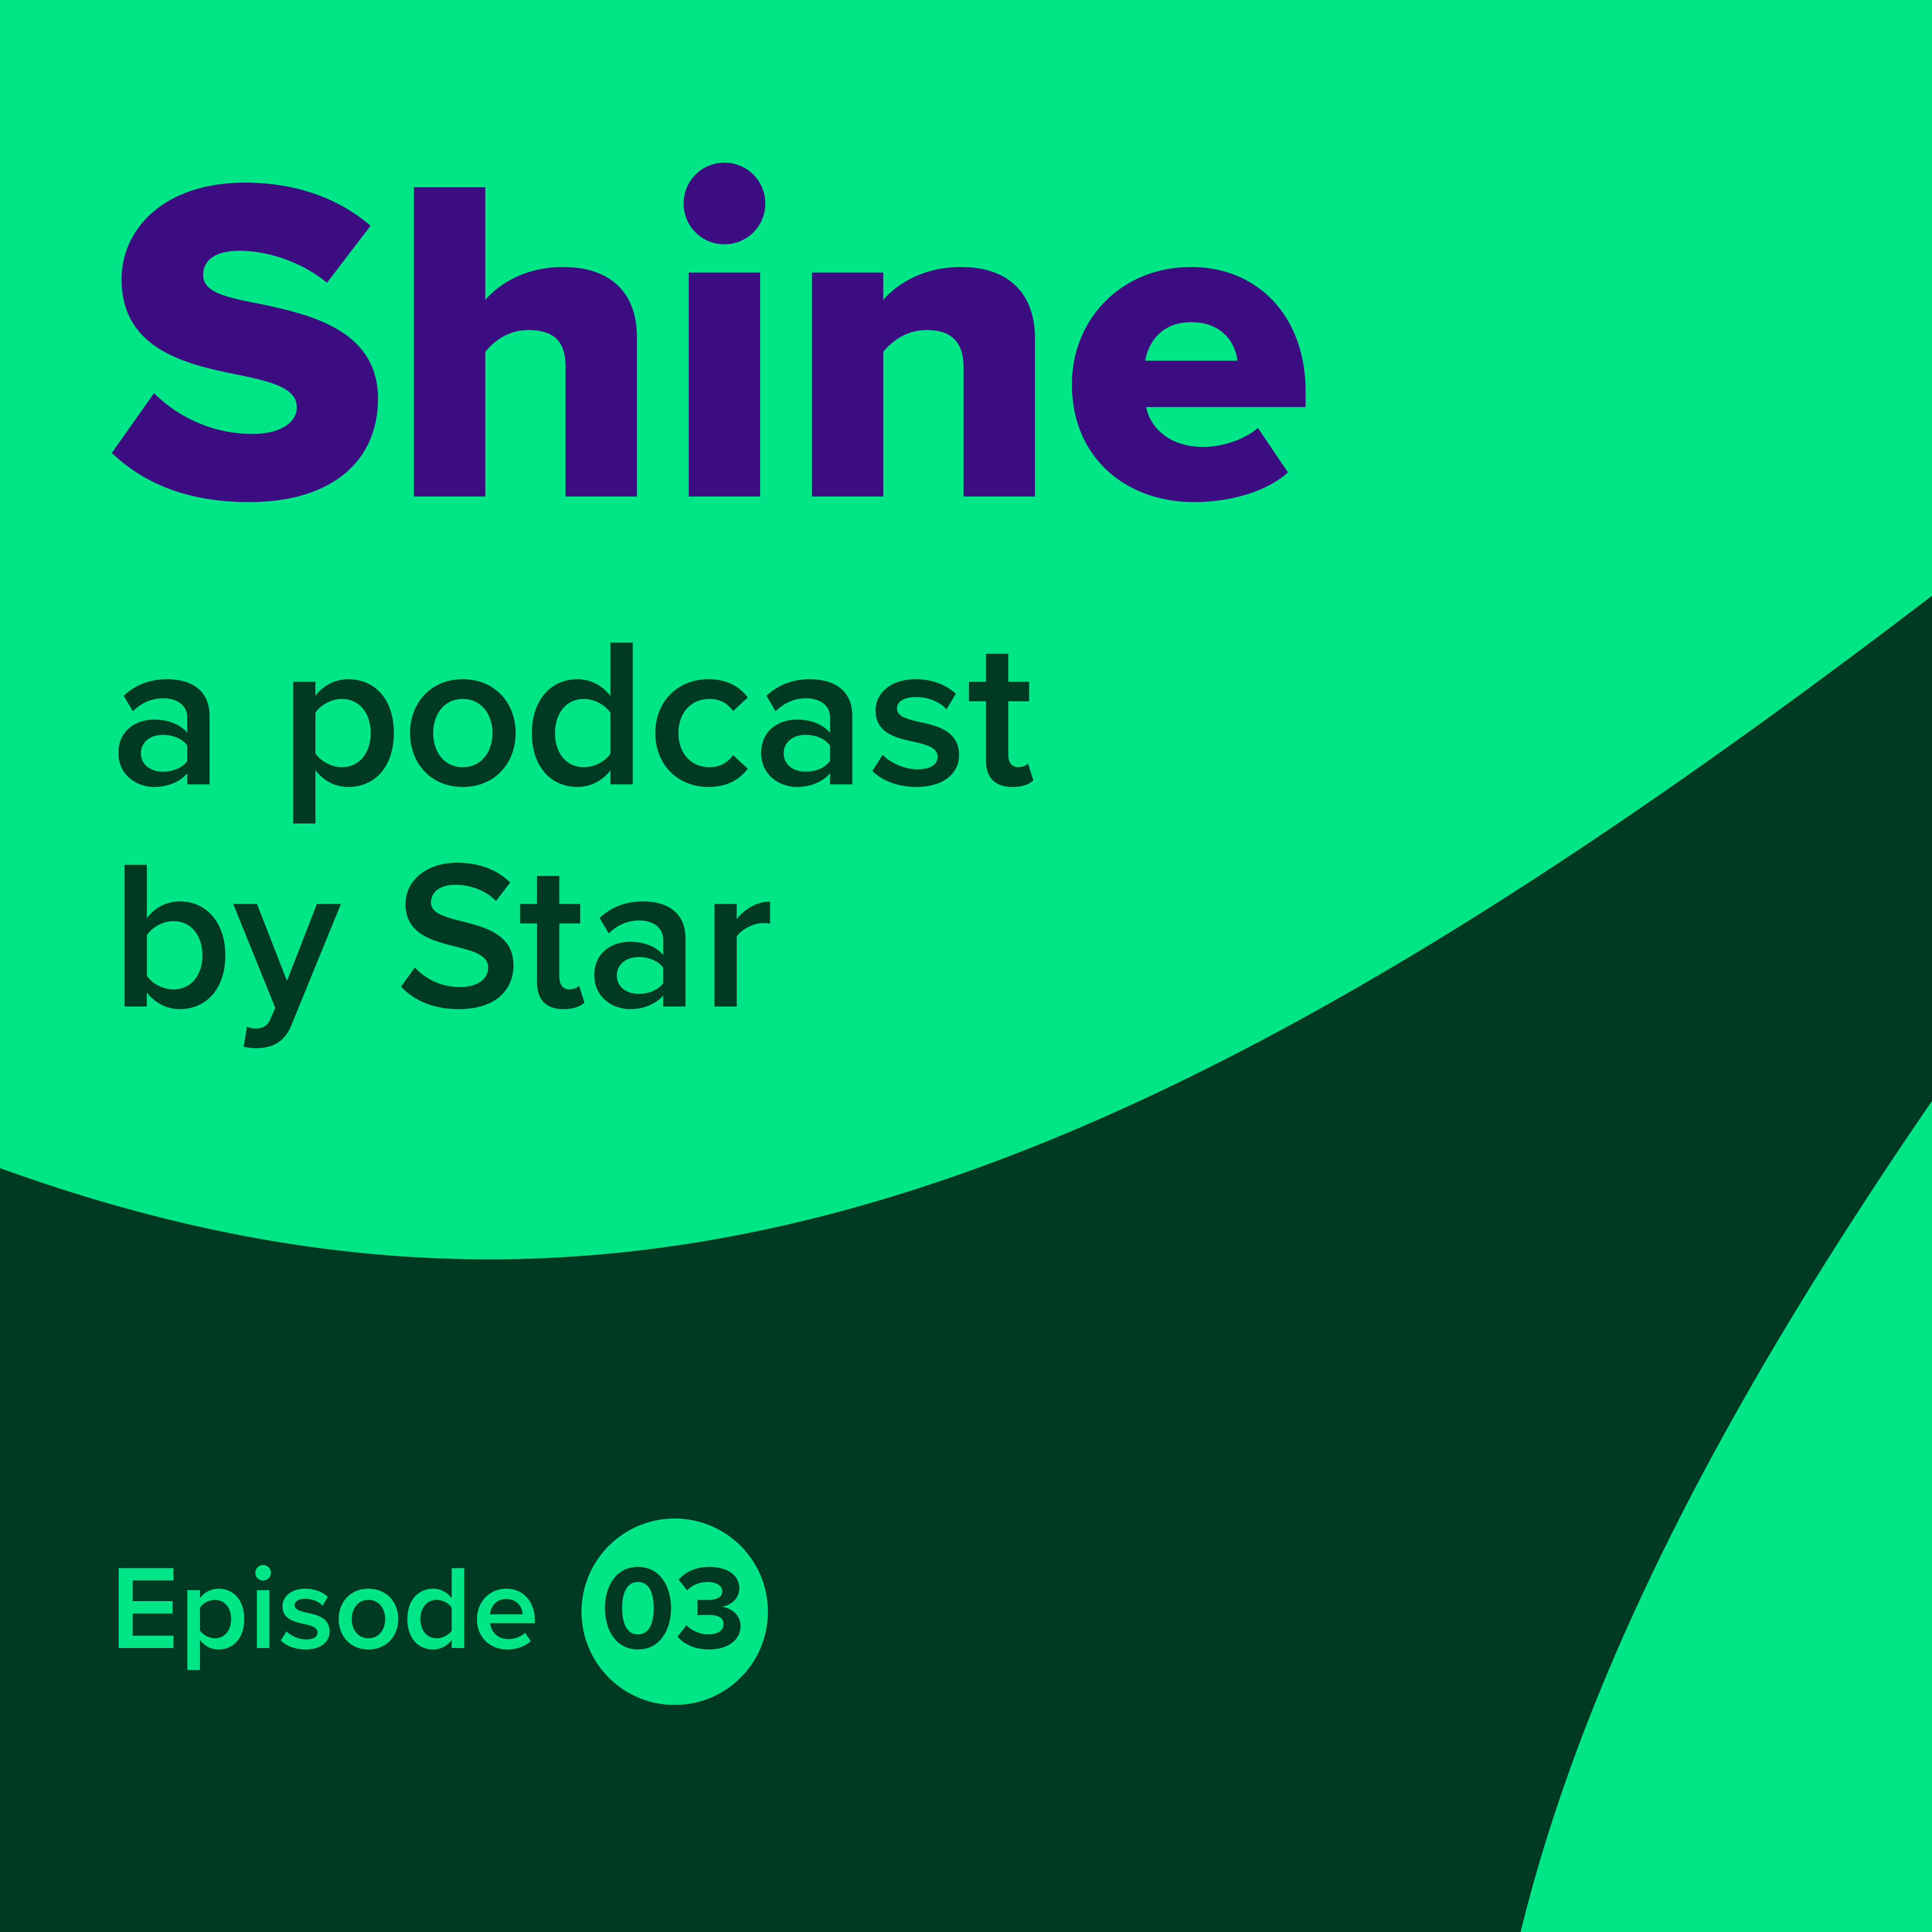 Shine: a podcast by Star